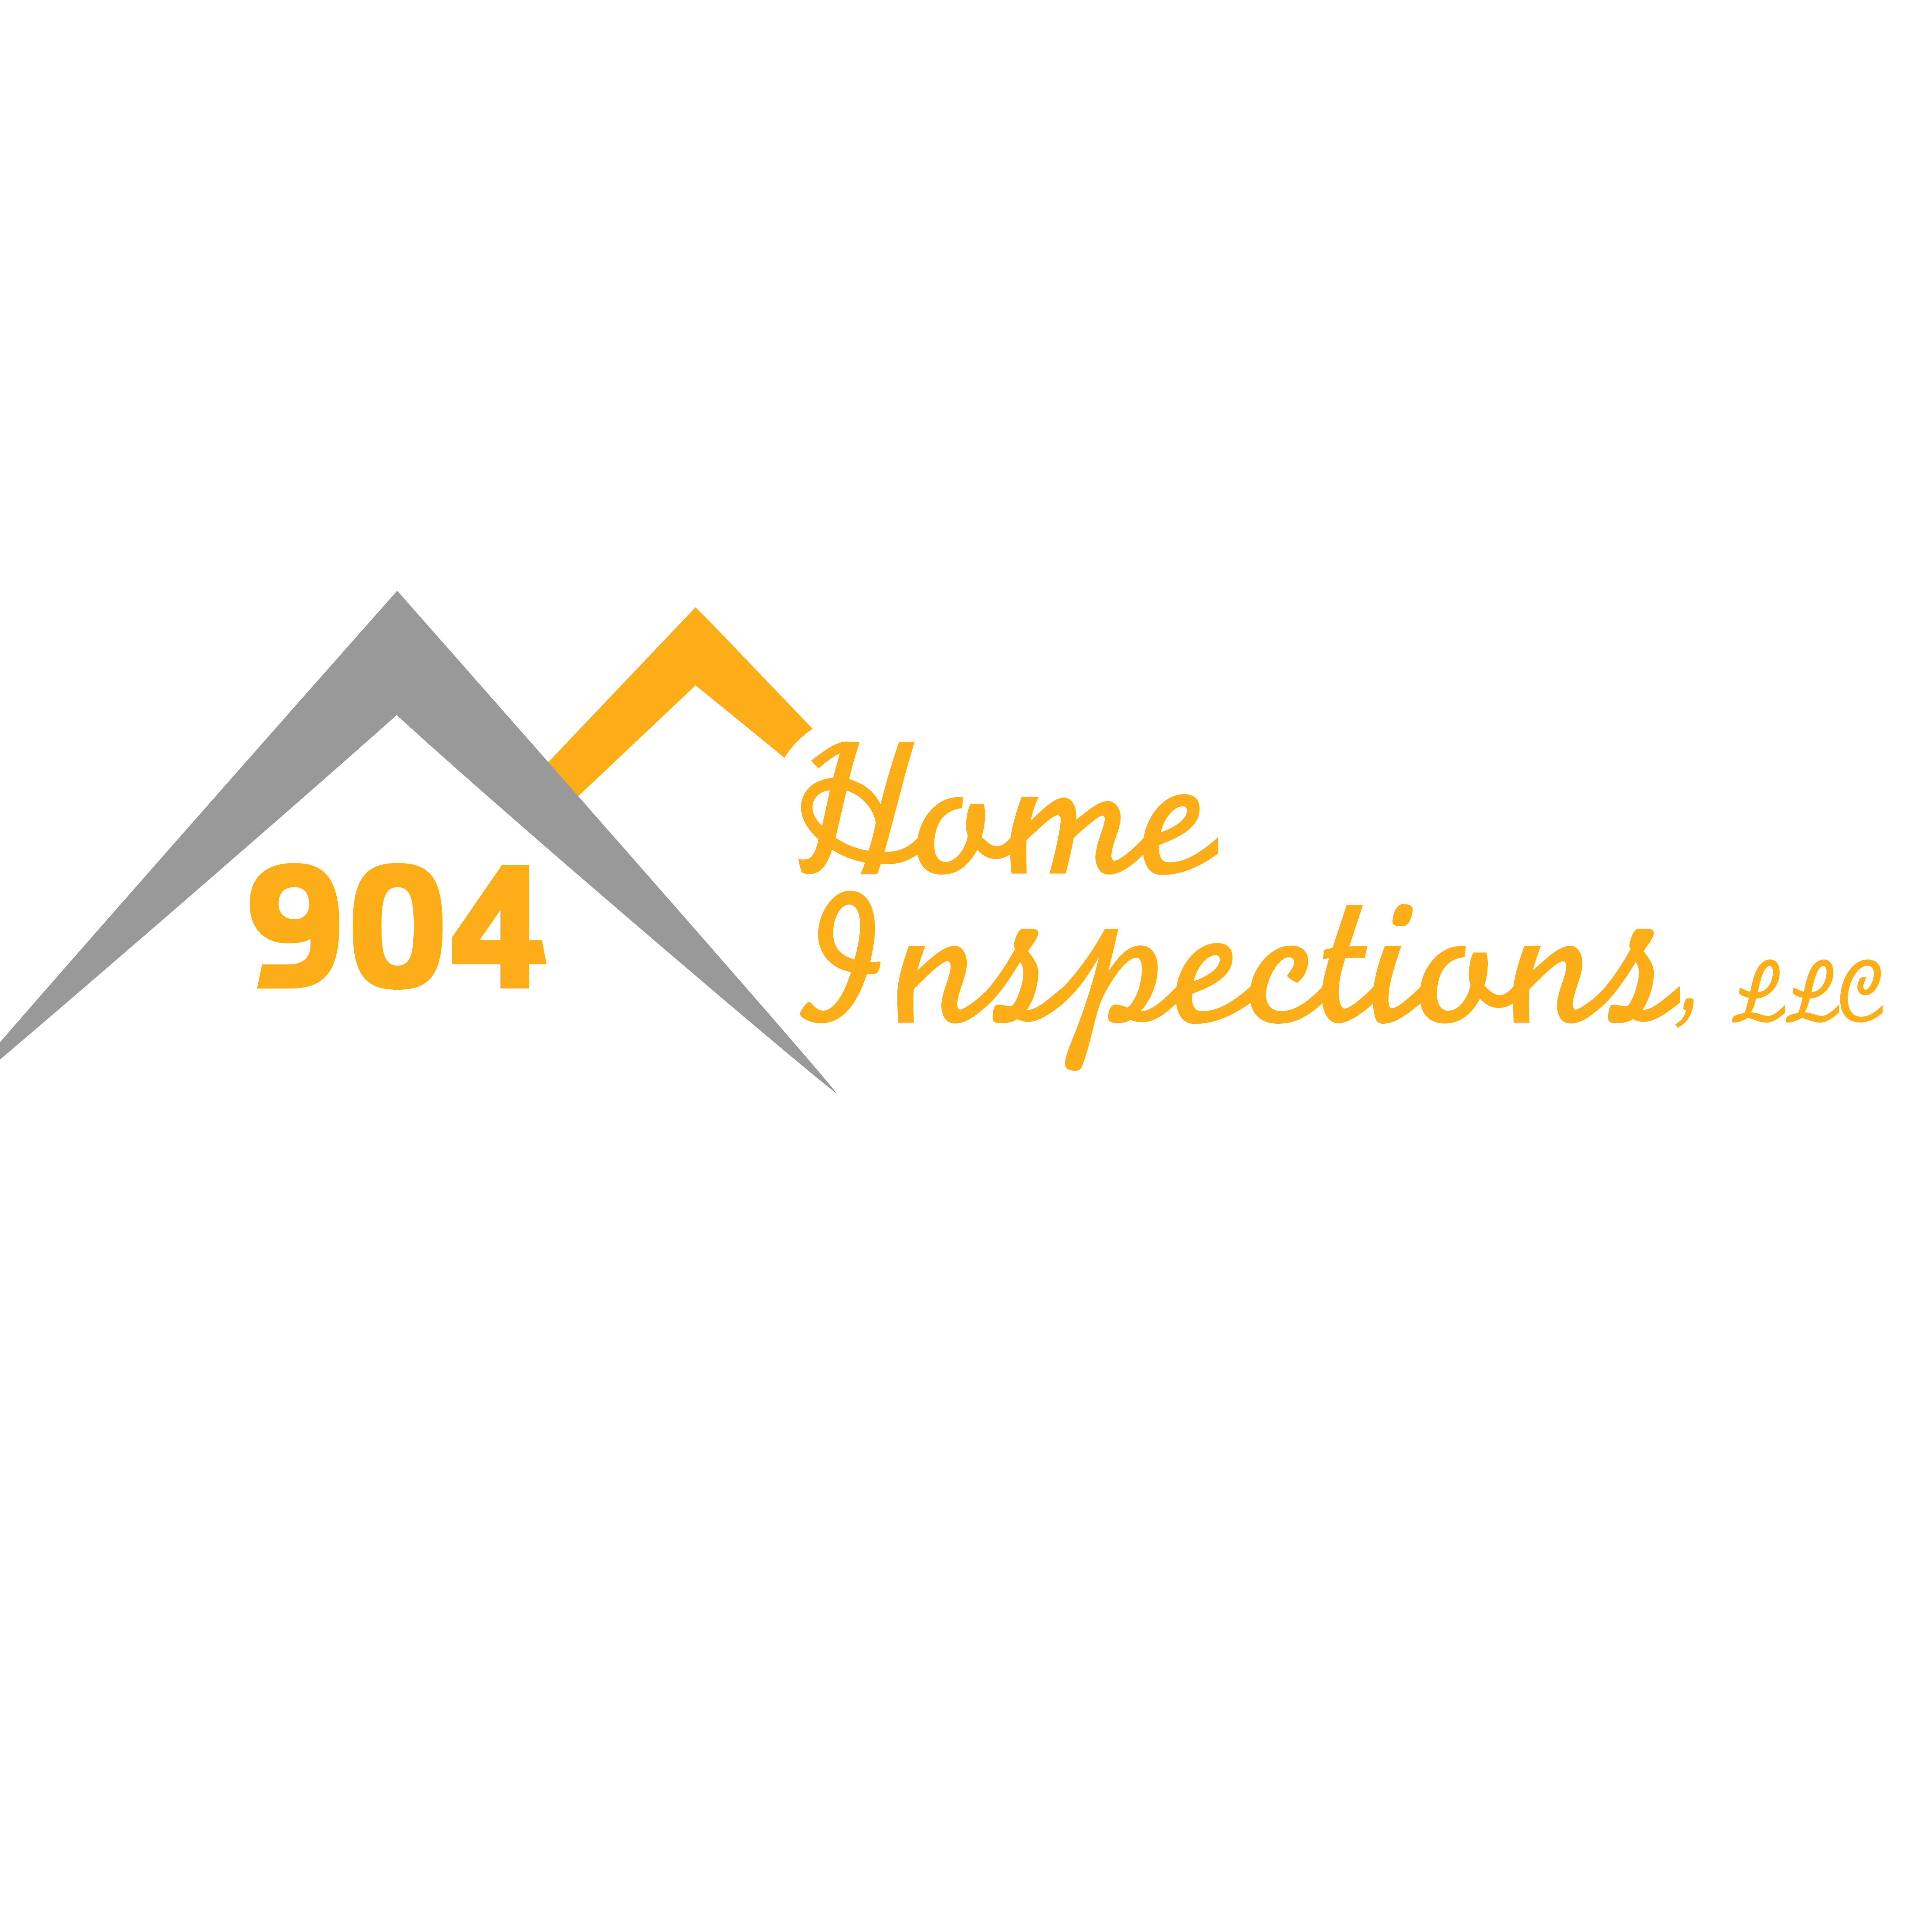 904 Home Inspections